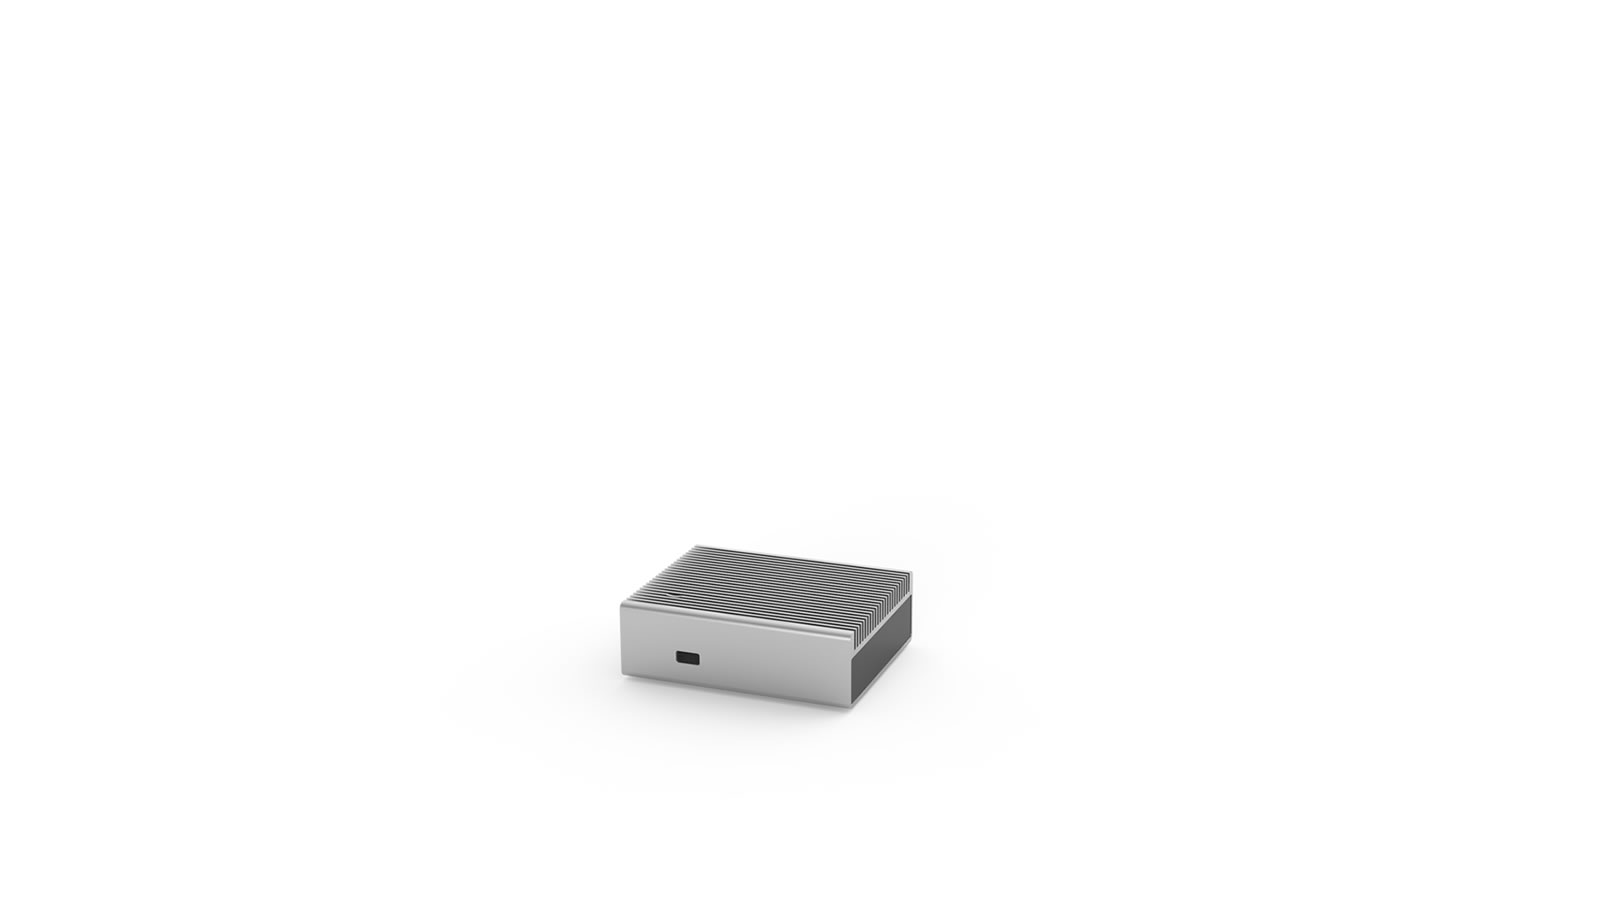 NC1 Fanless Chassis